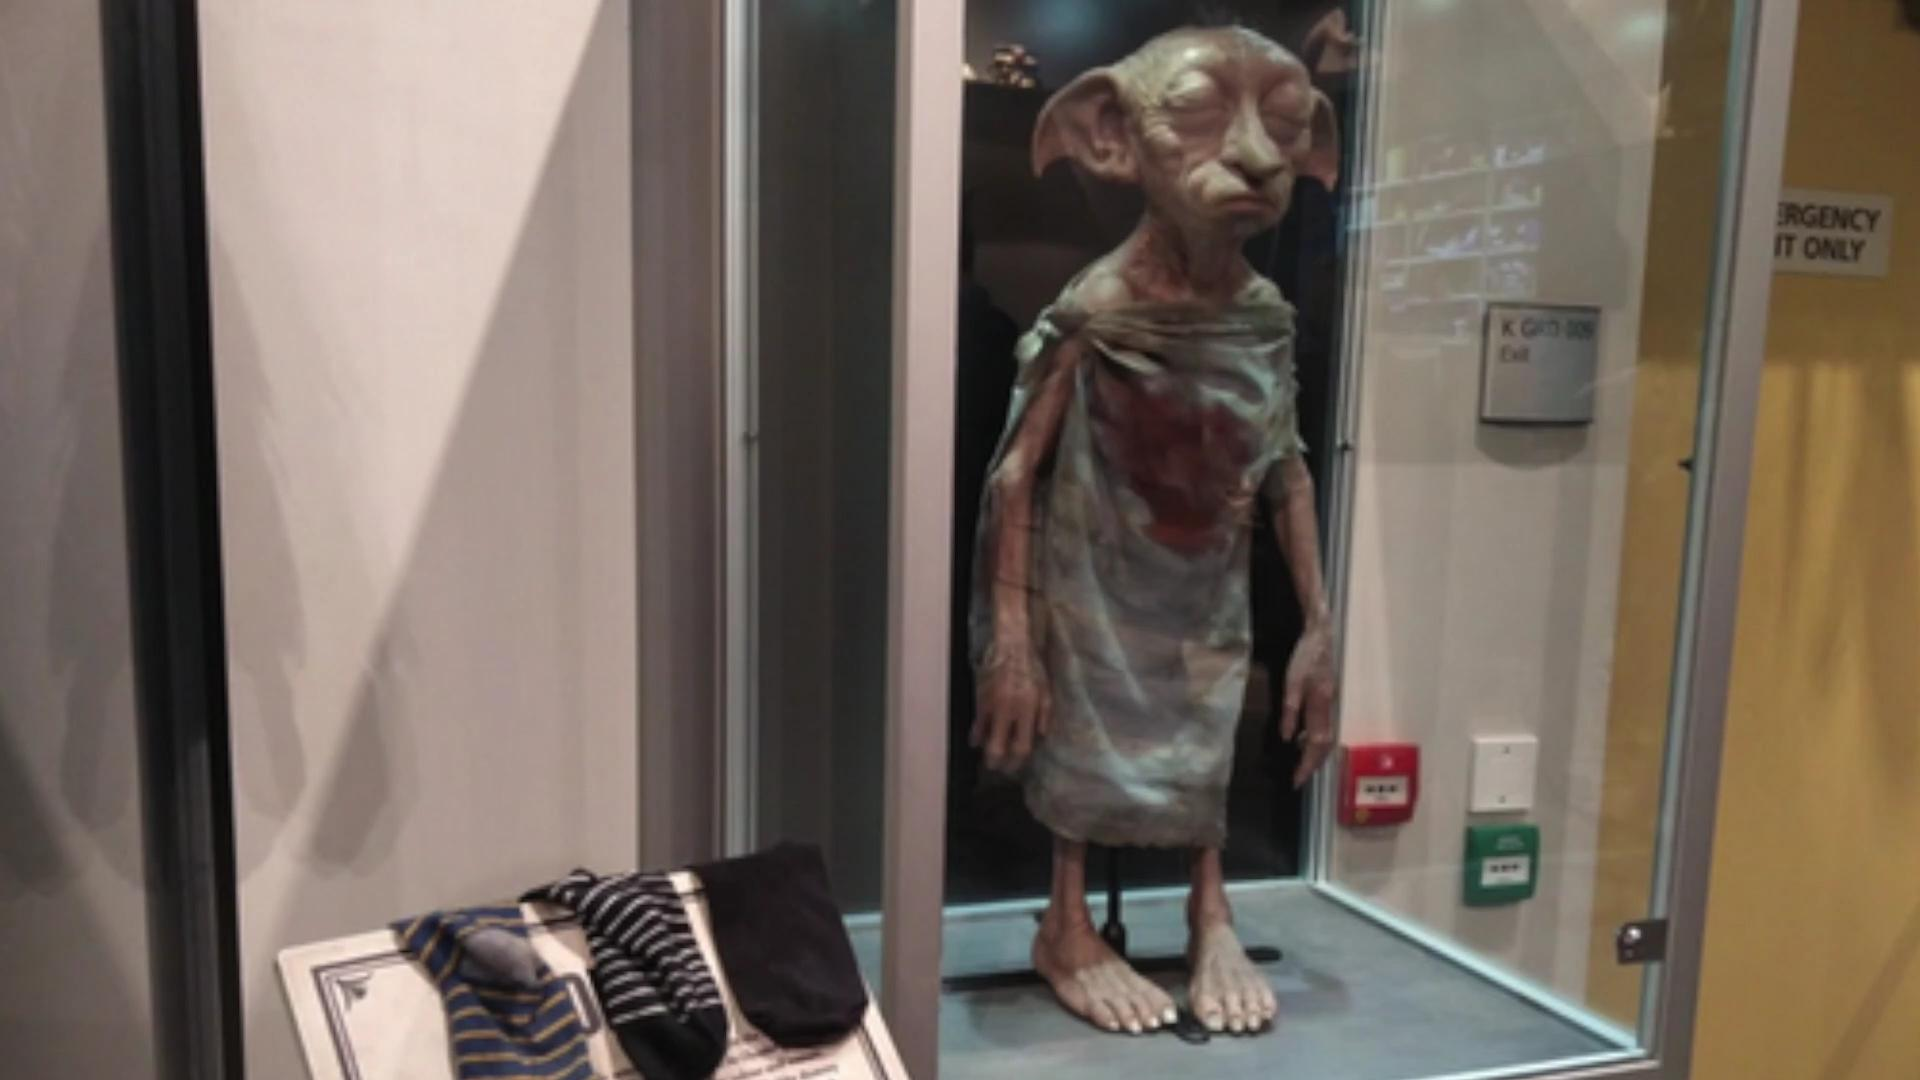 Harry Potter fans try to 'free' Dobby statue by leaving socks